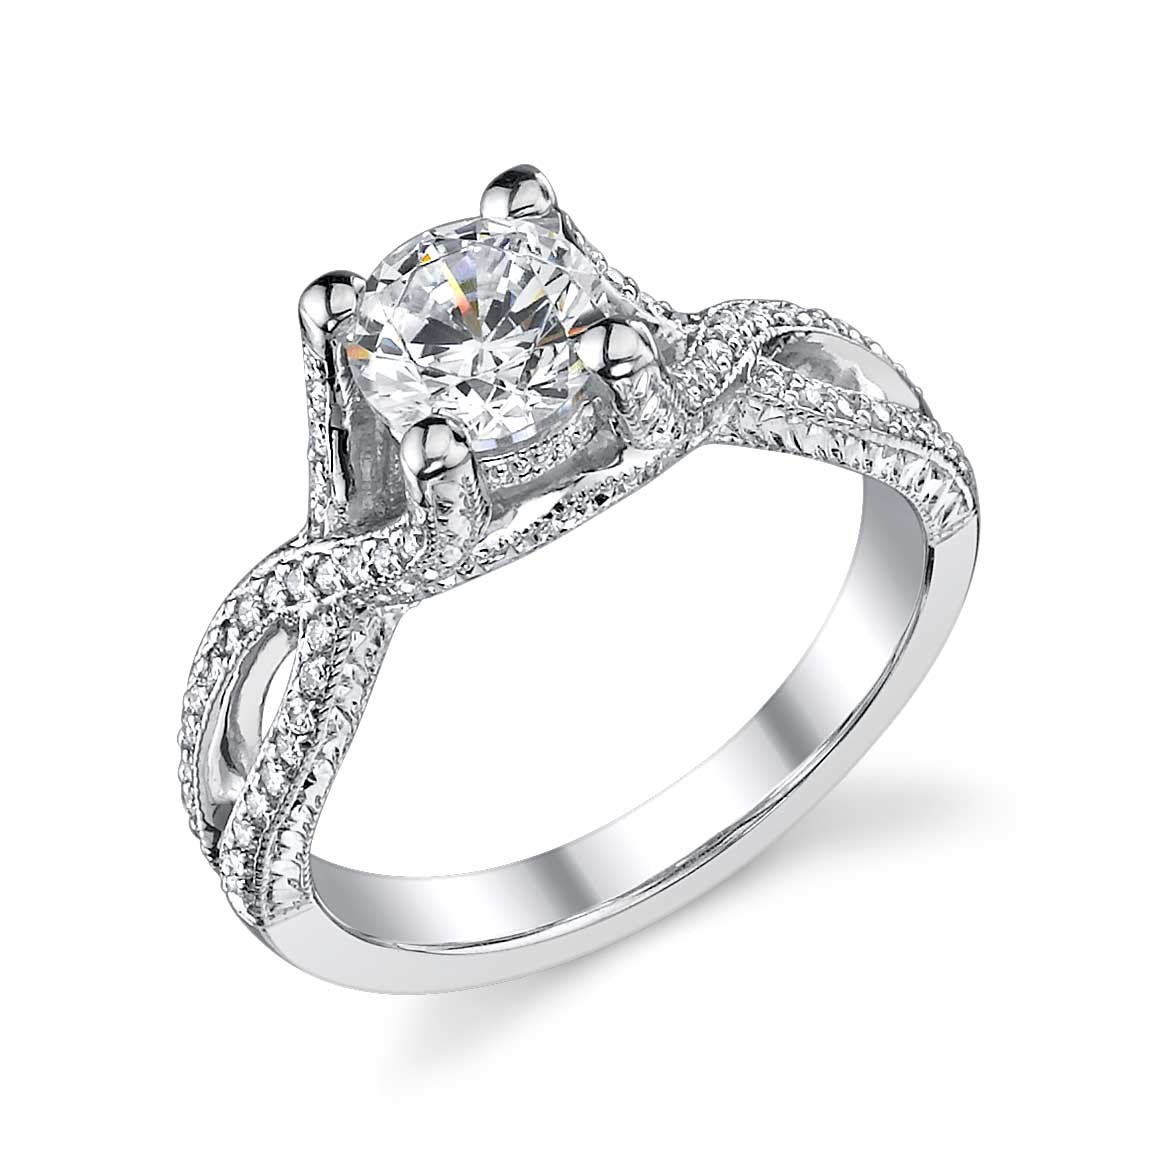 The Most Popular Engagement Rings for 2013